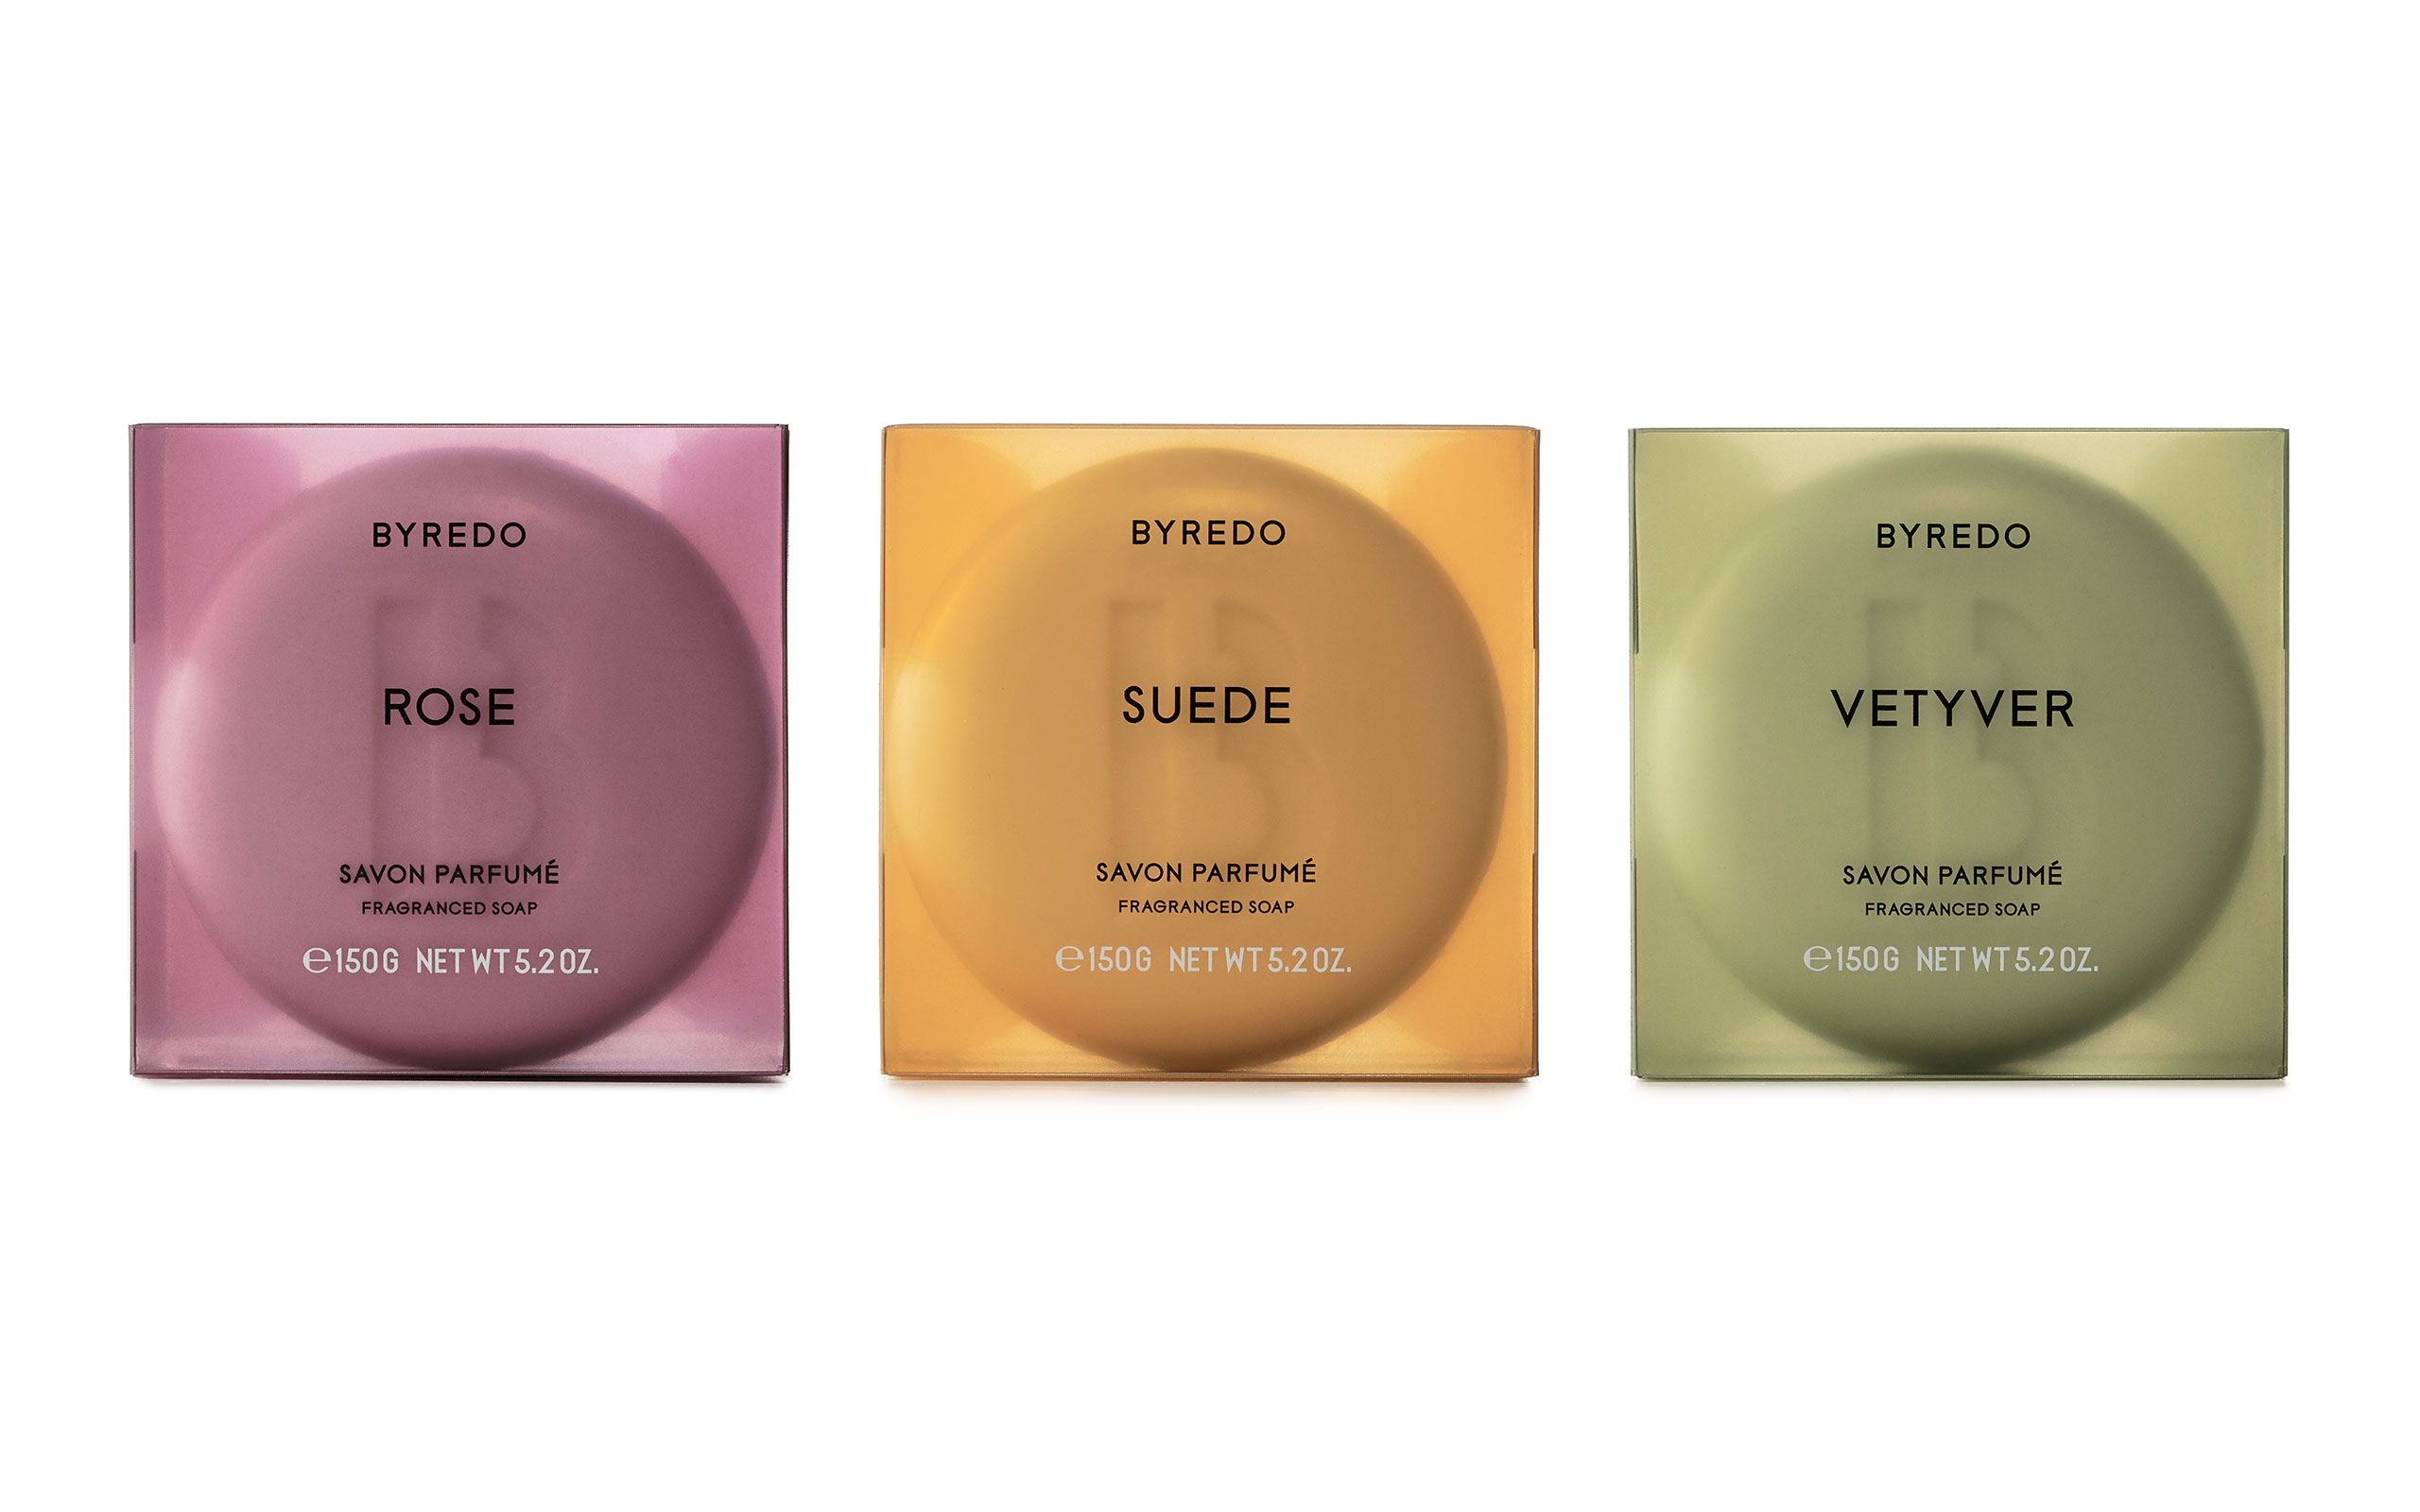 BYREDO Launched New Hand Care Items